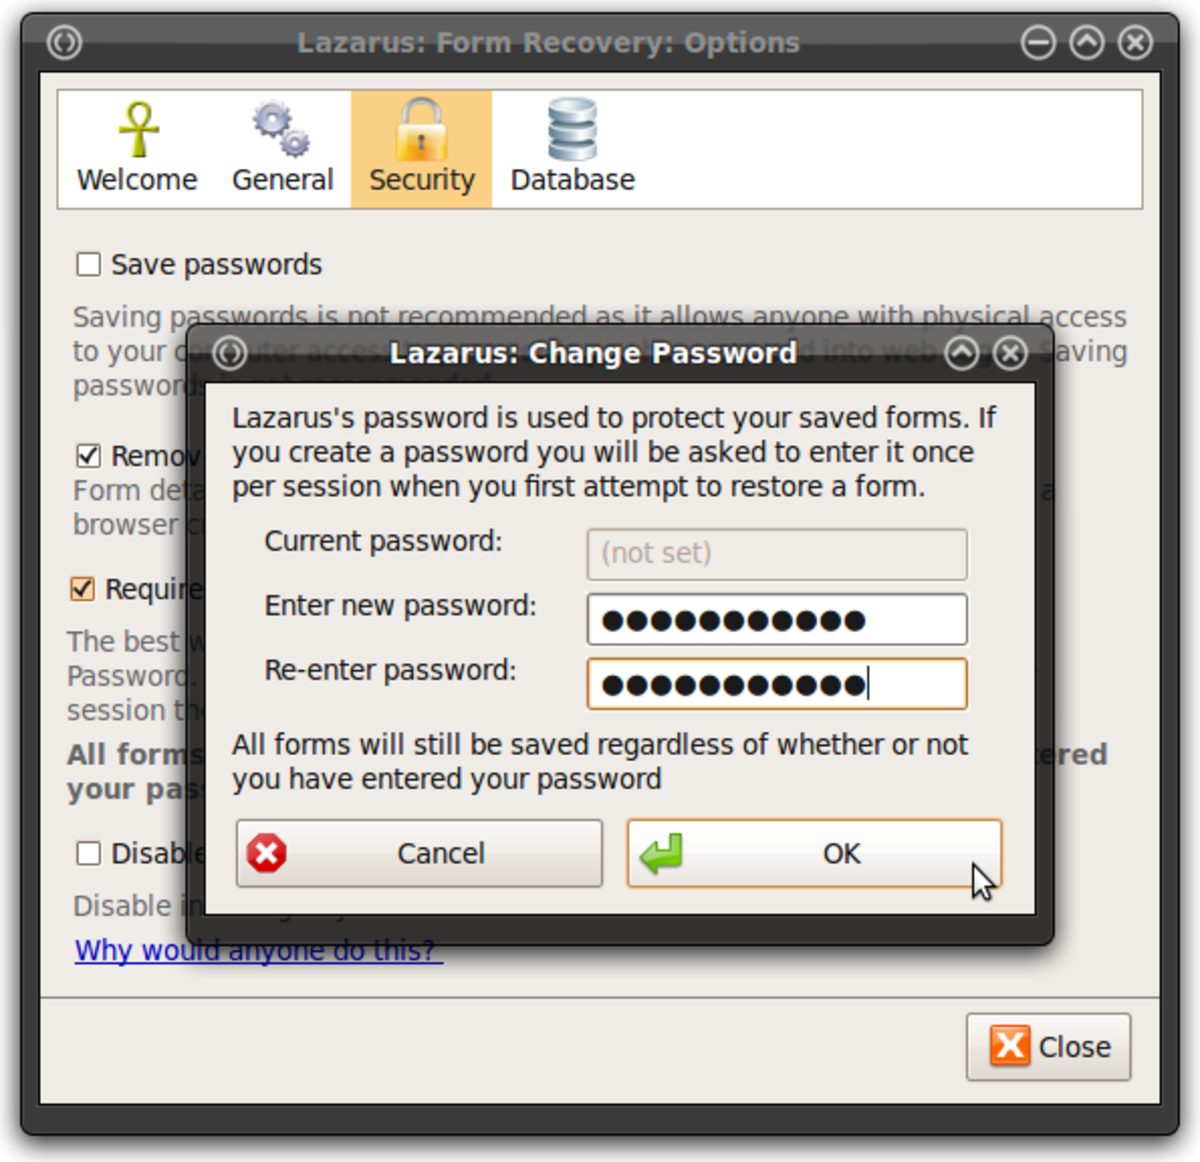 "After clicking ""Require a password to restore forms"" Lazarus will prompt you for a password. This password will be required only once per browser session, so even with a password you should close your browser if privacy is a concern."